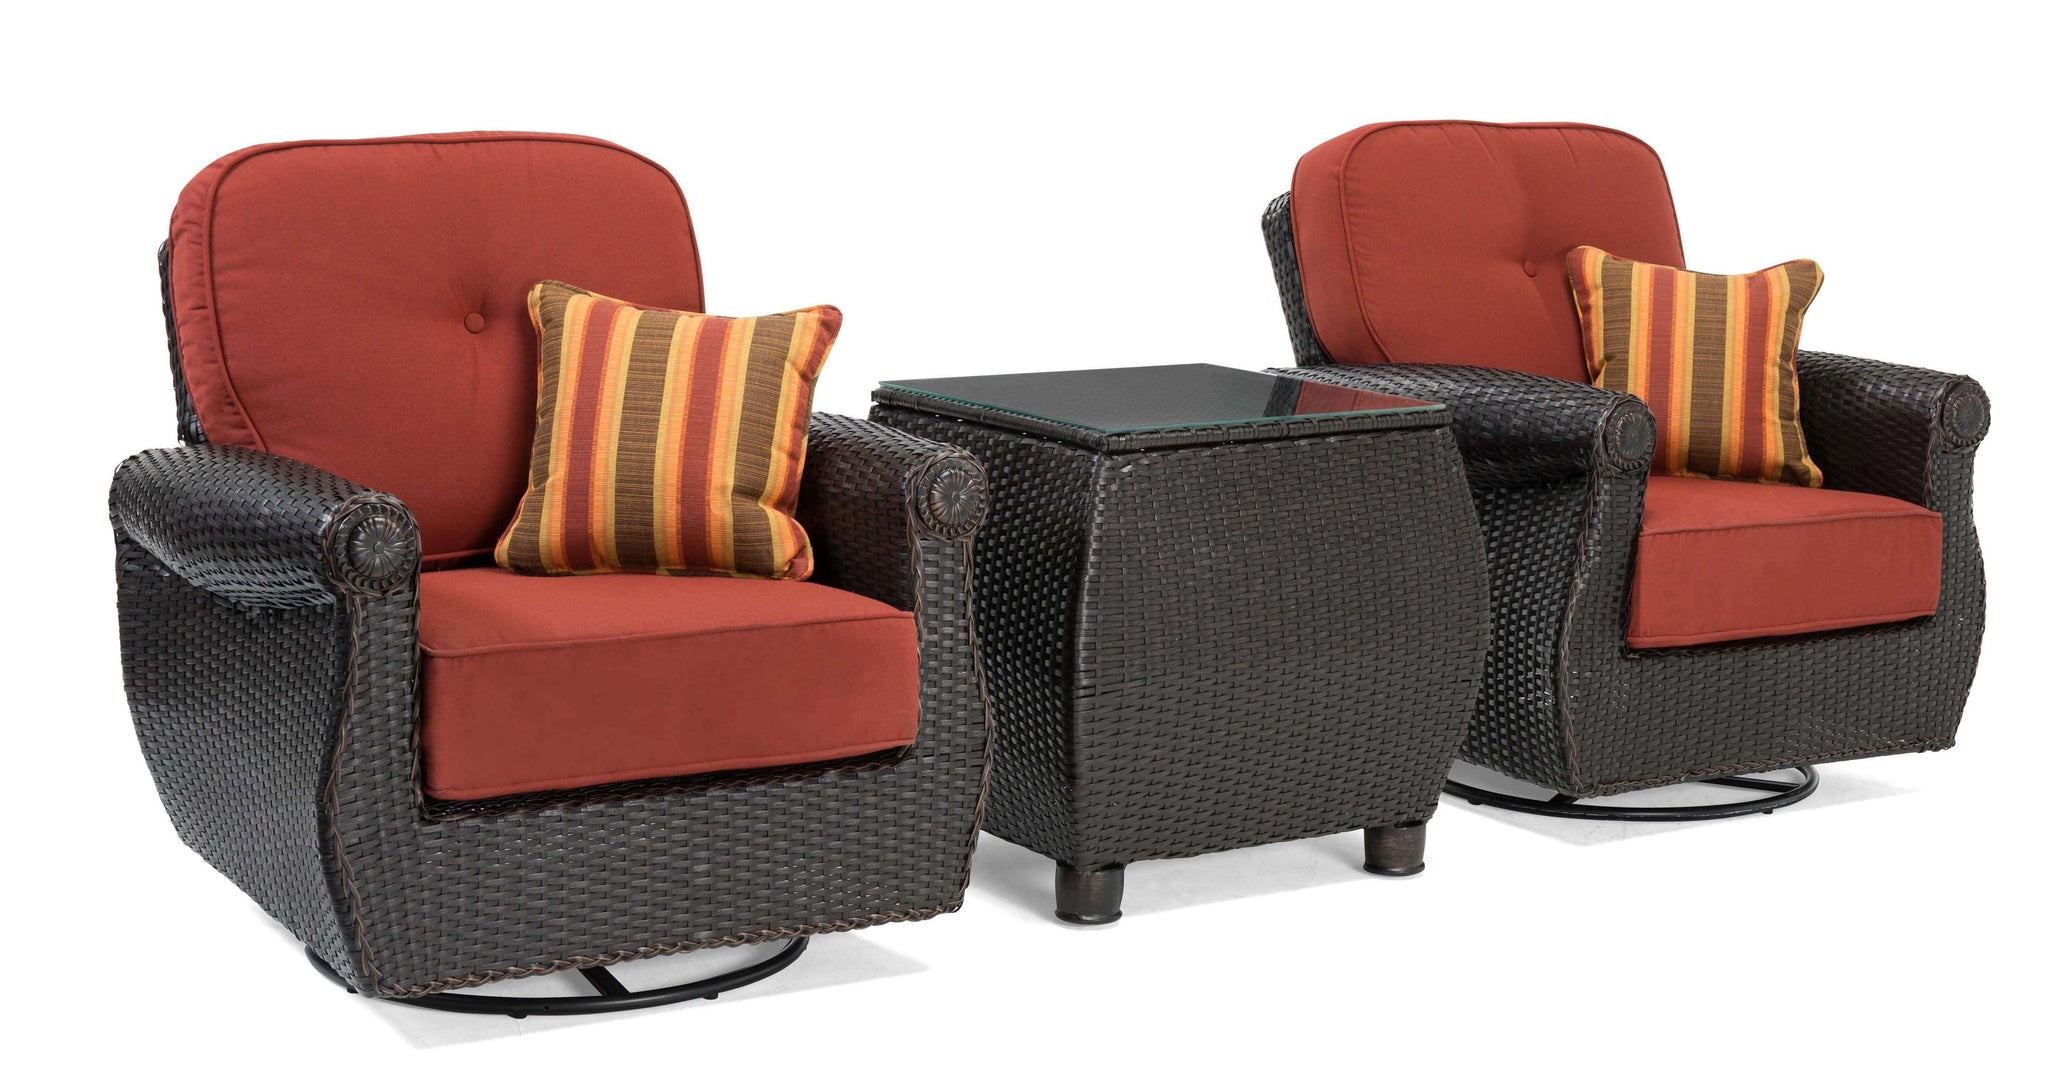 white chairs sets outdoor furniture for small spaces | Breckenridge Red 3 Pc Patio Furniture Set: 2 Swivel ...